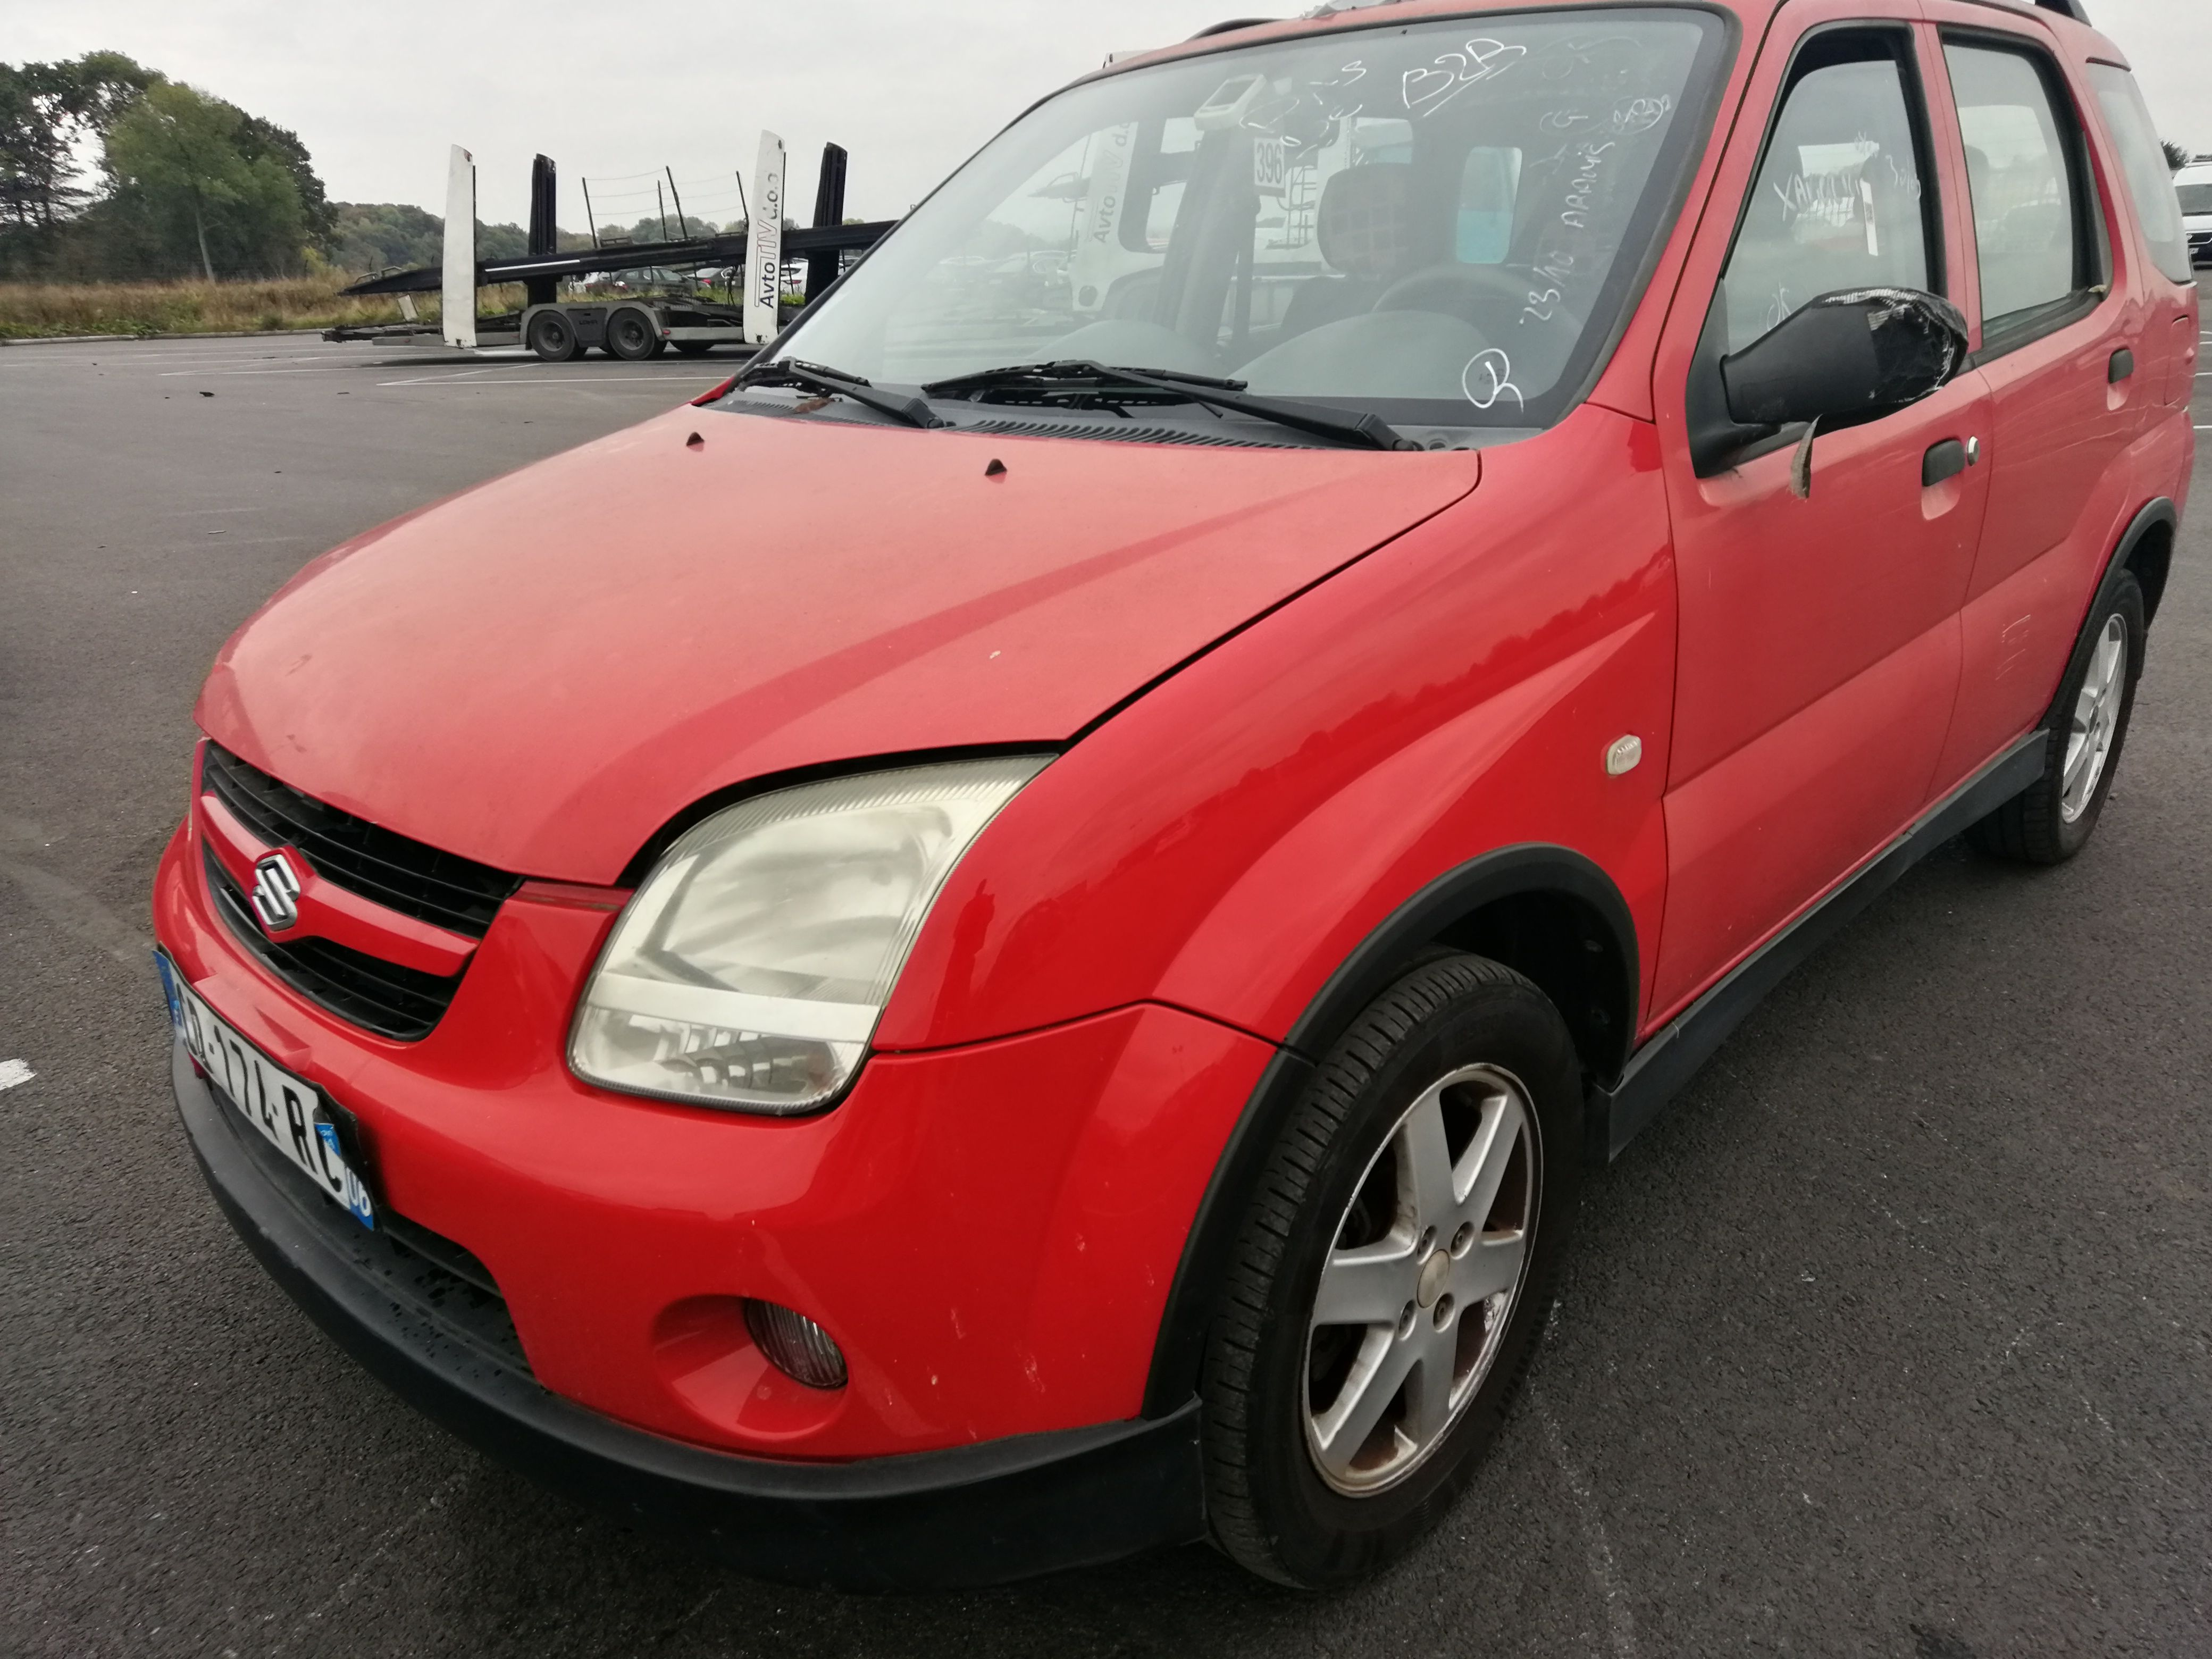 suzuki ignis ignis 1 3i vvt gl beauvais alcopa auction. Black Bedroom Furniture Sets. Home Design Ideas